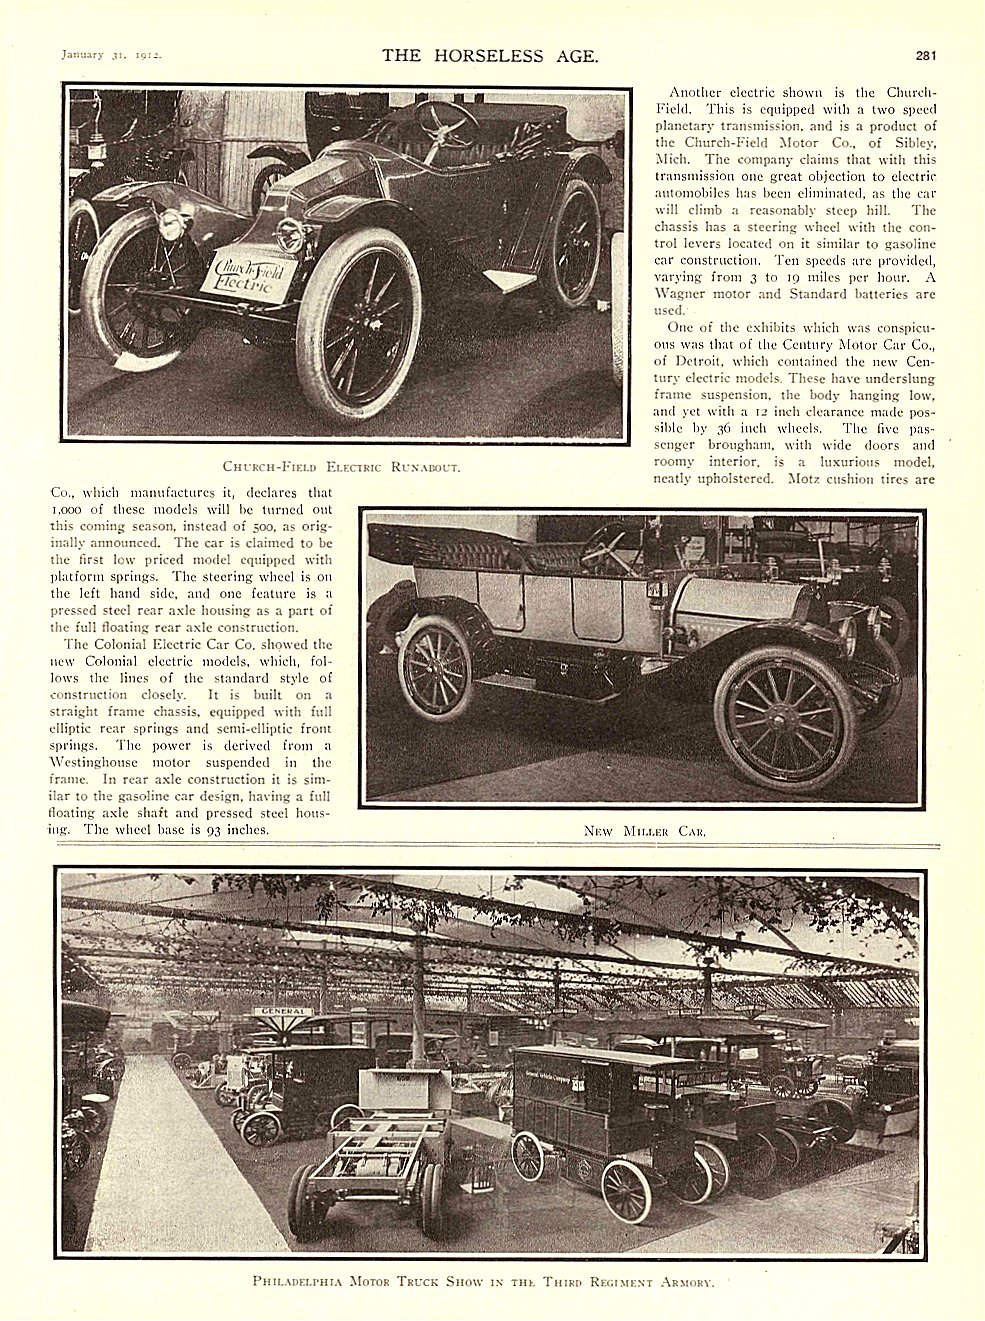 1912 1 31 CHURCH-FIELD Electric Church-Field Electric Runabout THE HORSELESS AGE January 31, 1912 University of Minnesota Library 8.75″x11.75″ page 281